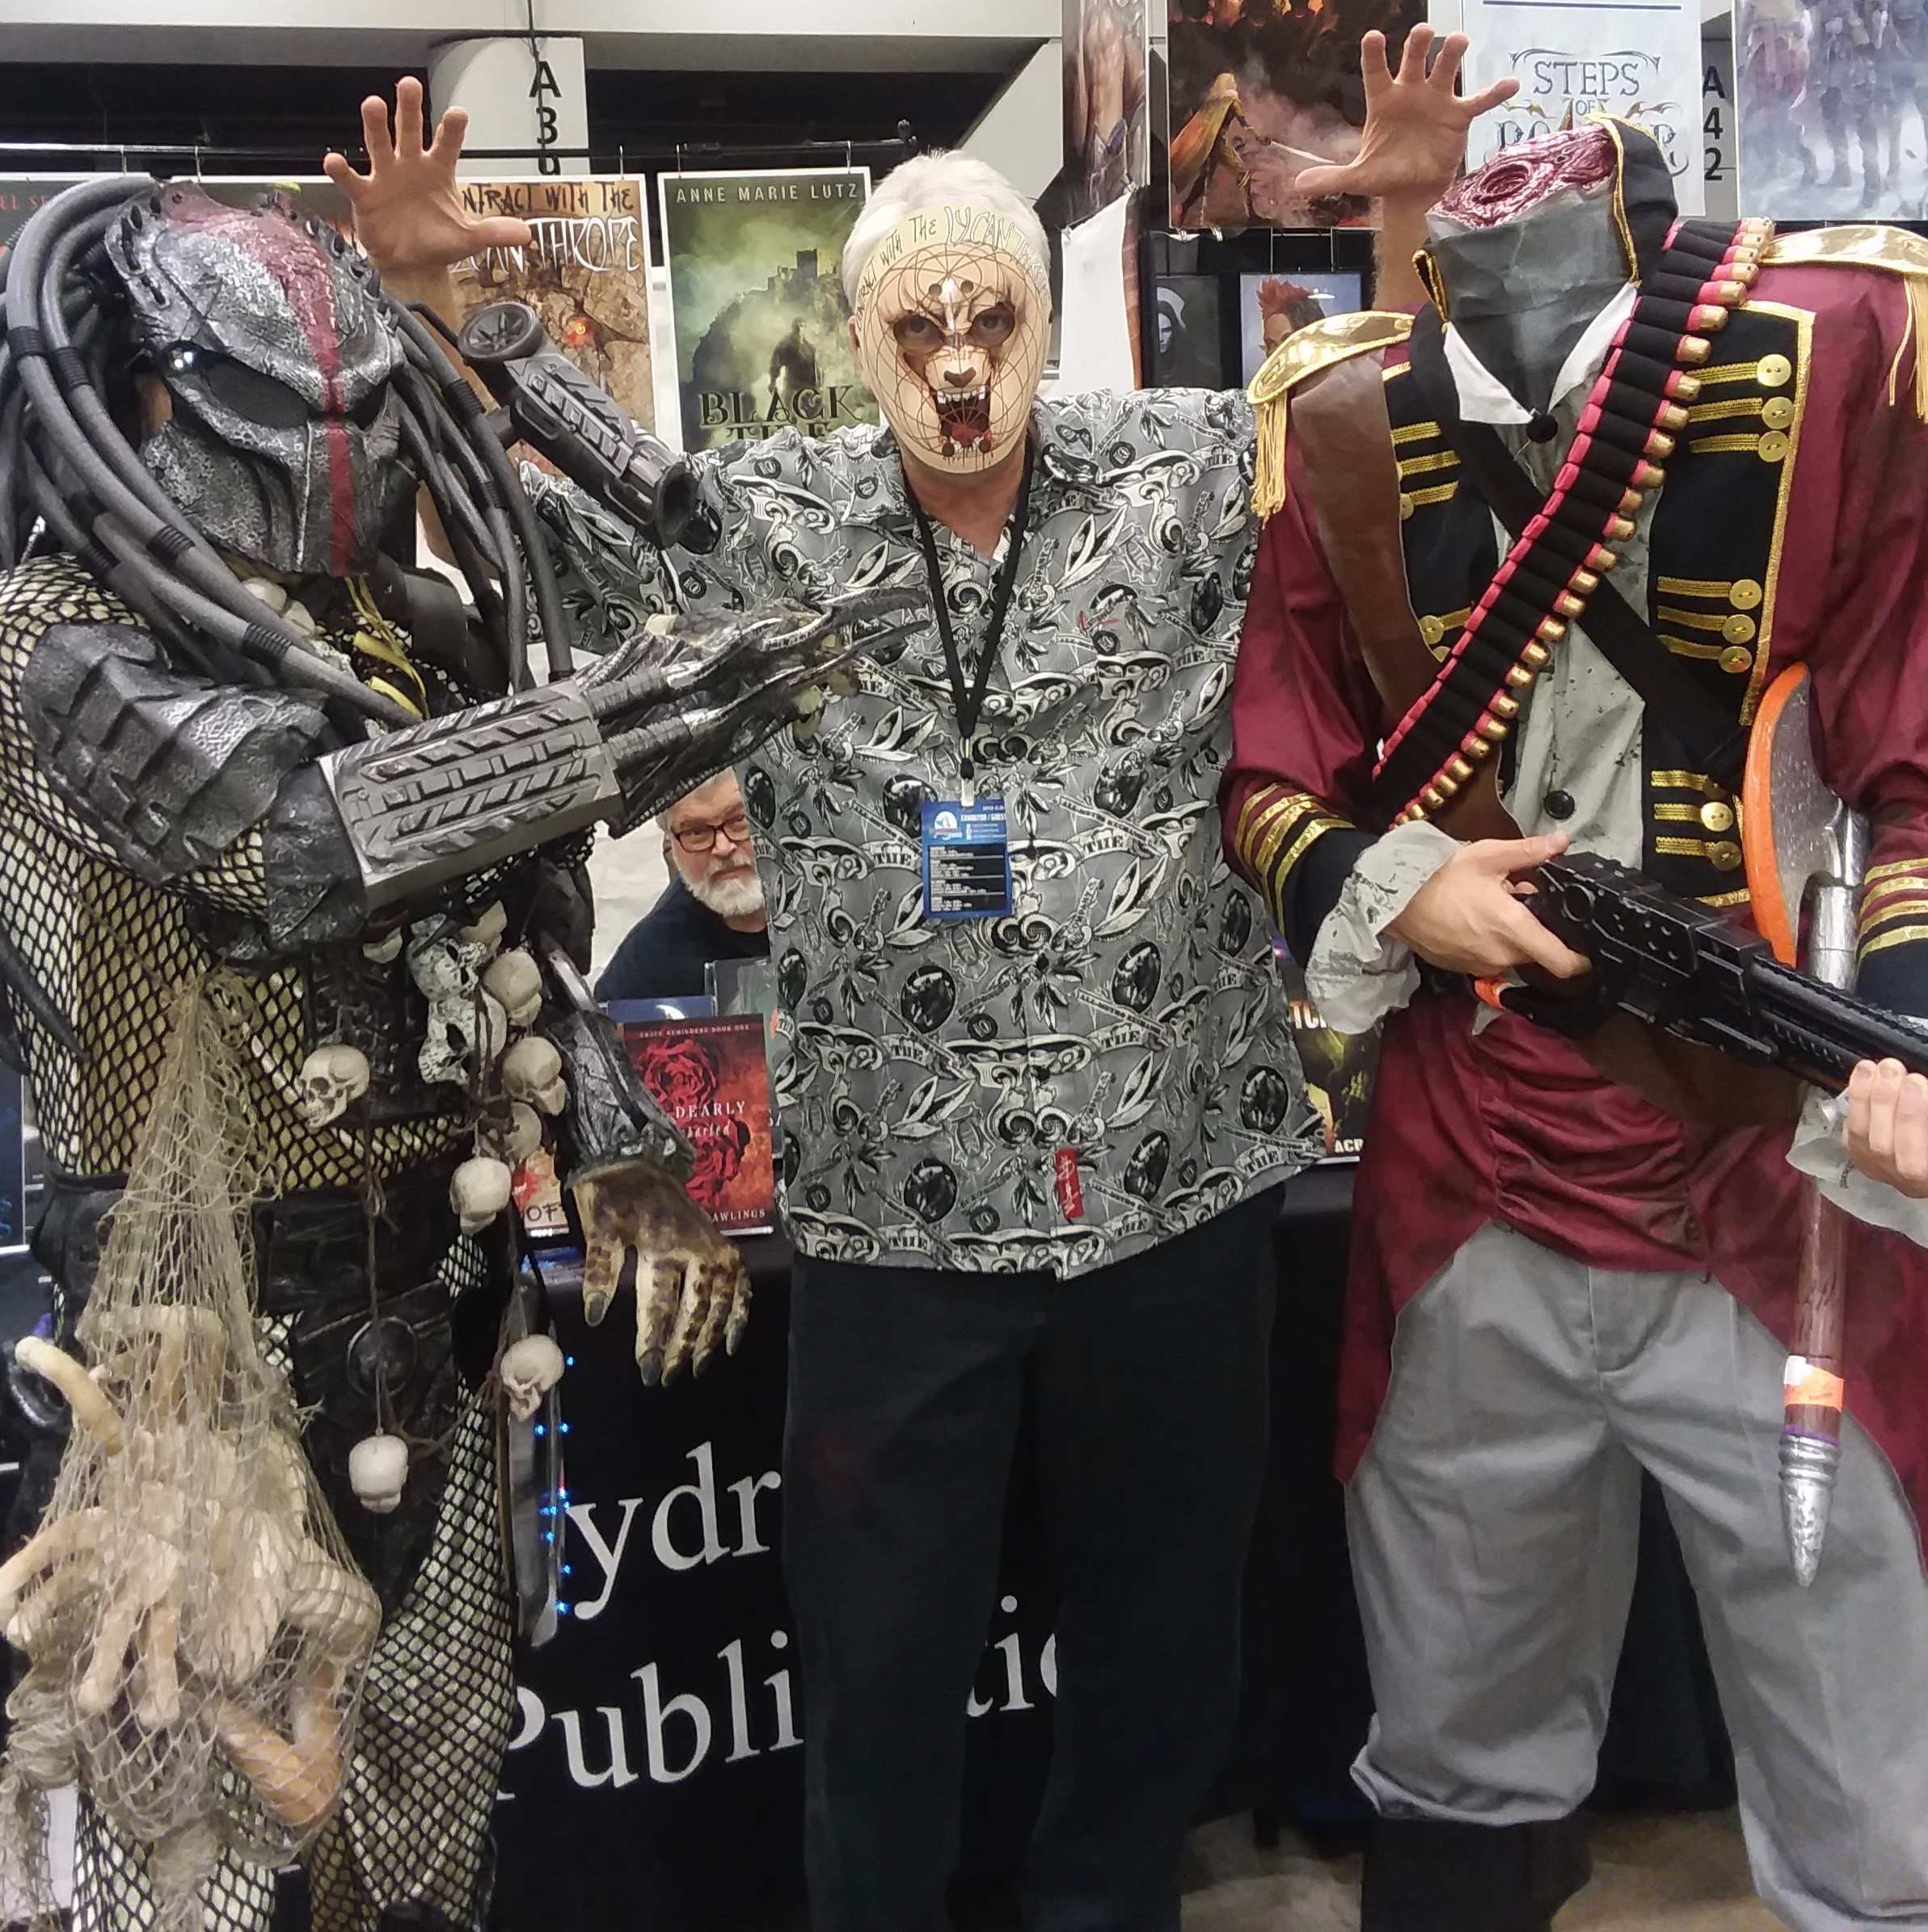 The Lycanthrope escaped the wrath of the Sleepy Hollow Headless Horseman and the Superhuman Predator just in time to offer you this $15.00 Howl-O-Ween special for Contract With The Lycanthrope!